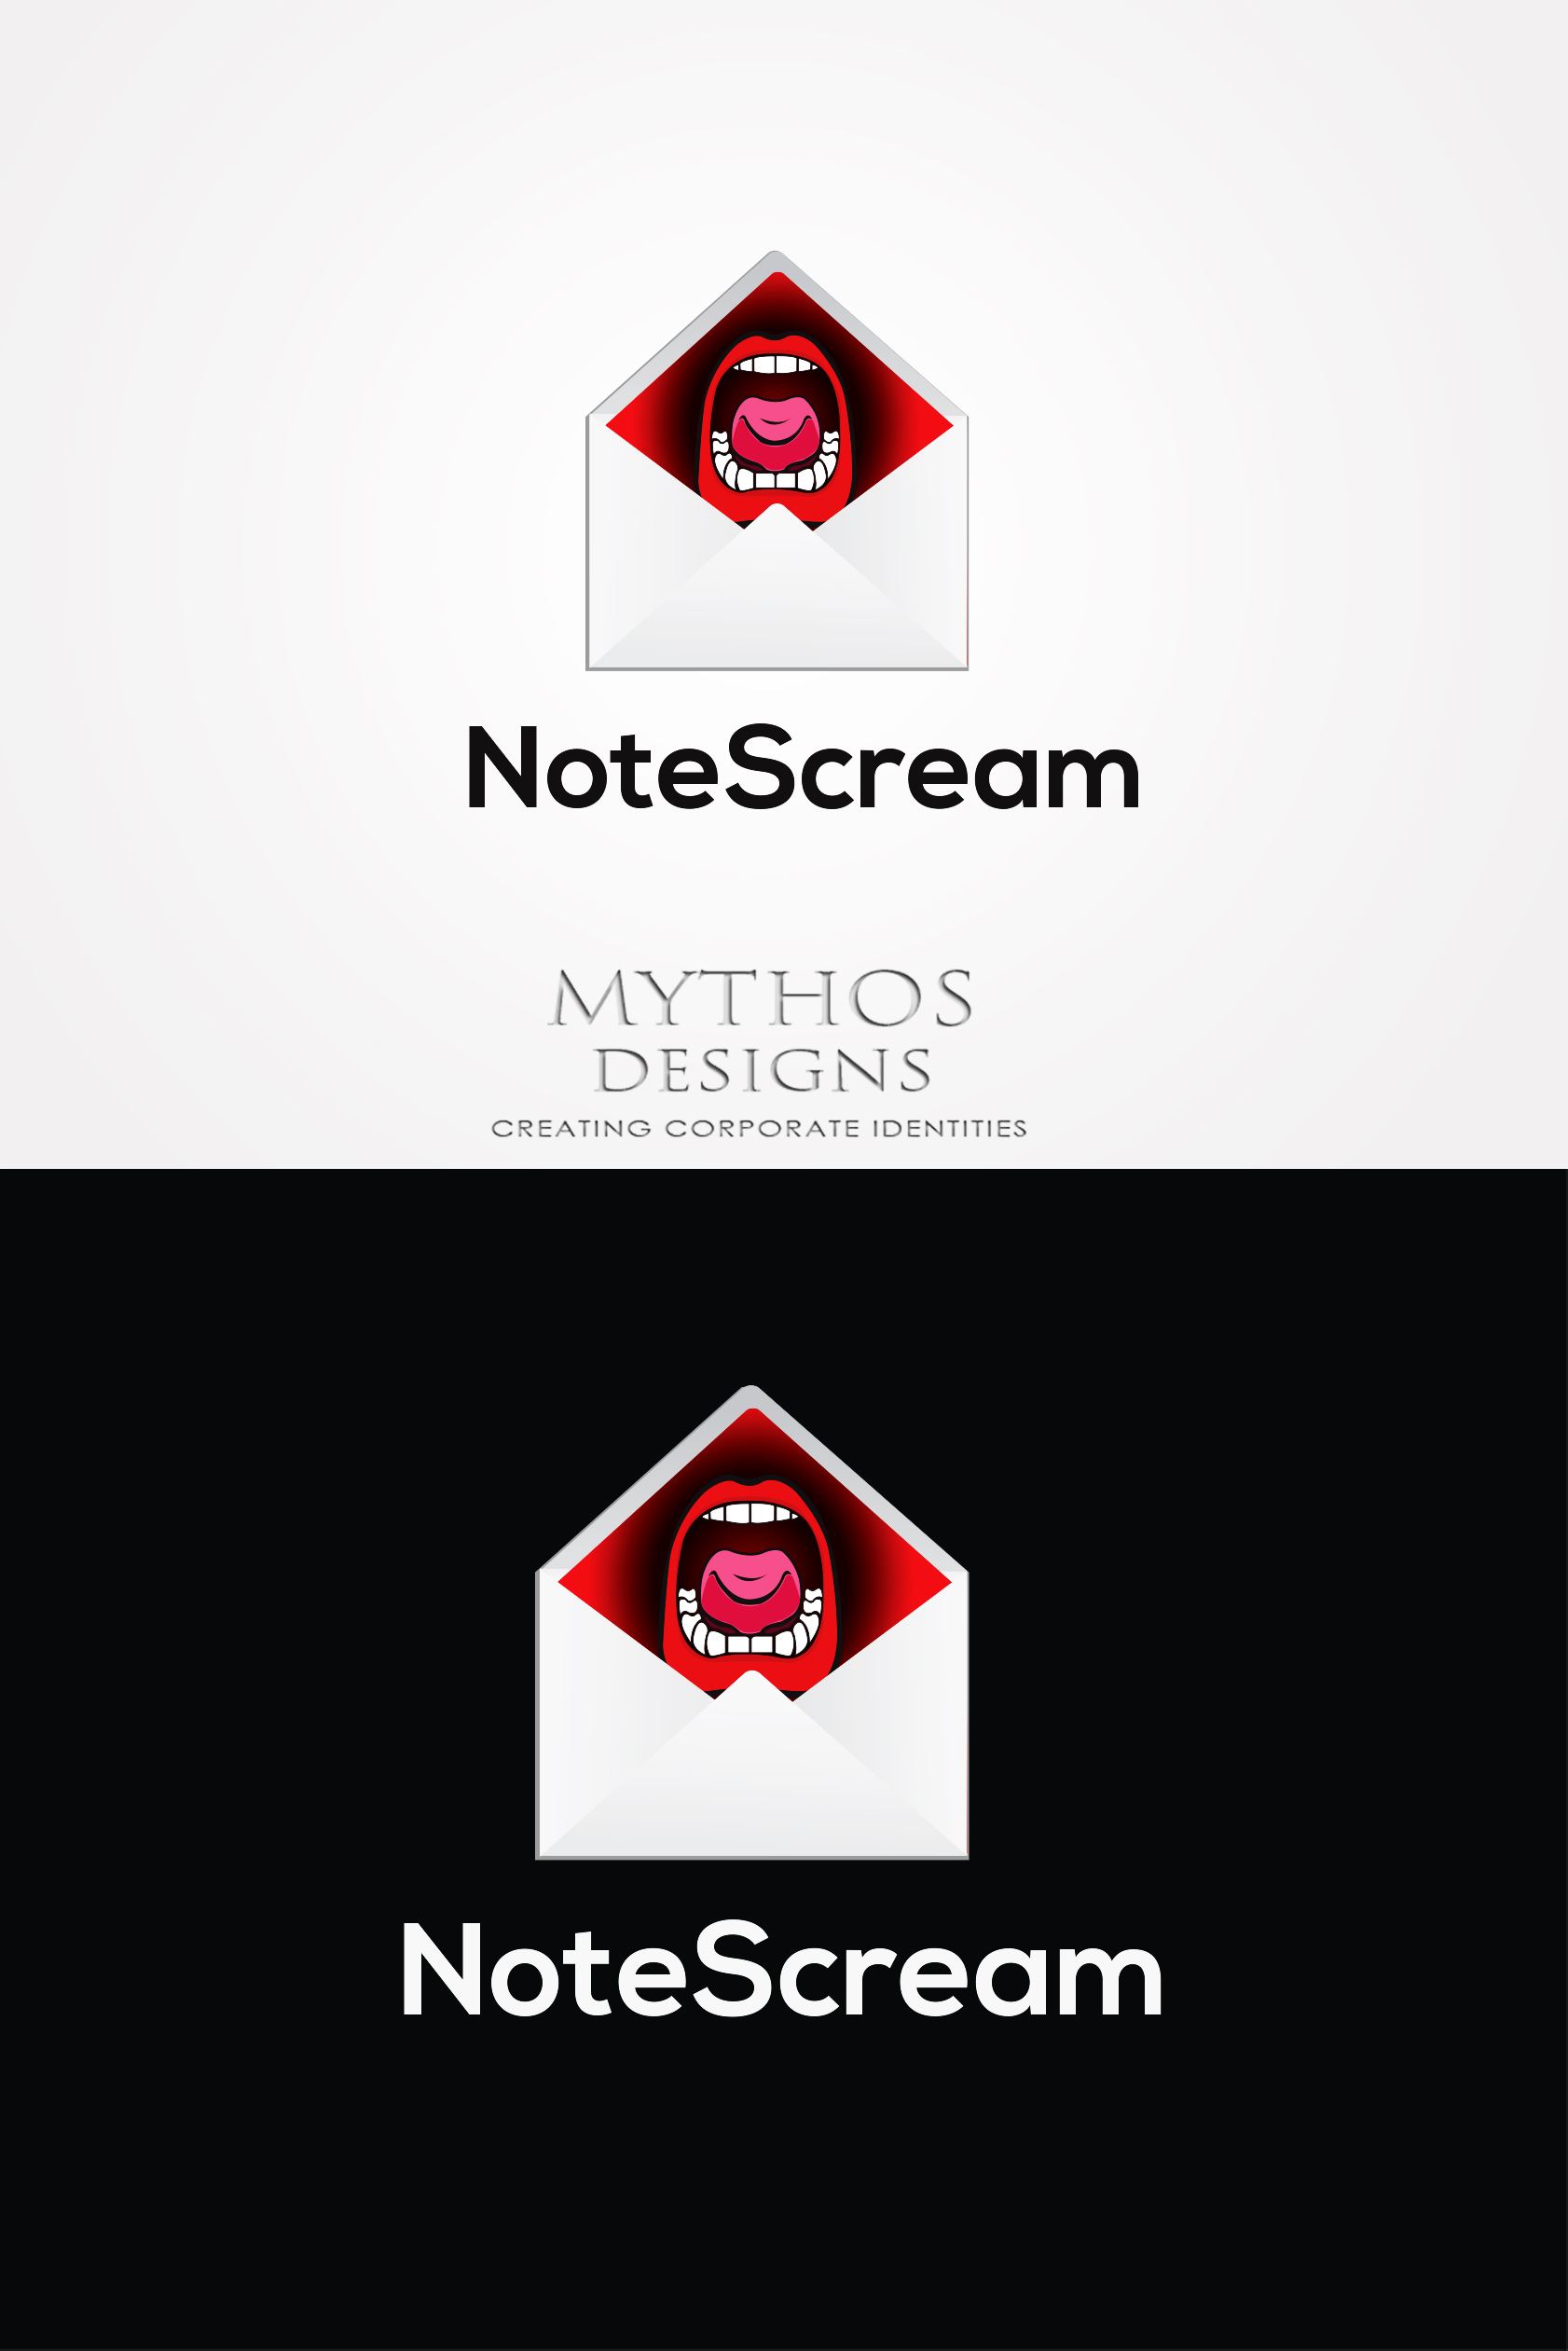 Logo Design by Mythos Designs - Entry No. 95 in the Logo Design Contest Imaginative Logo Design for NoteStream.